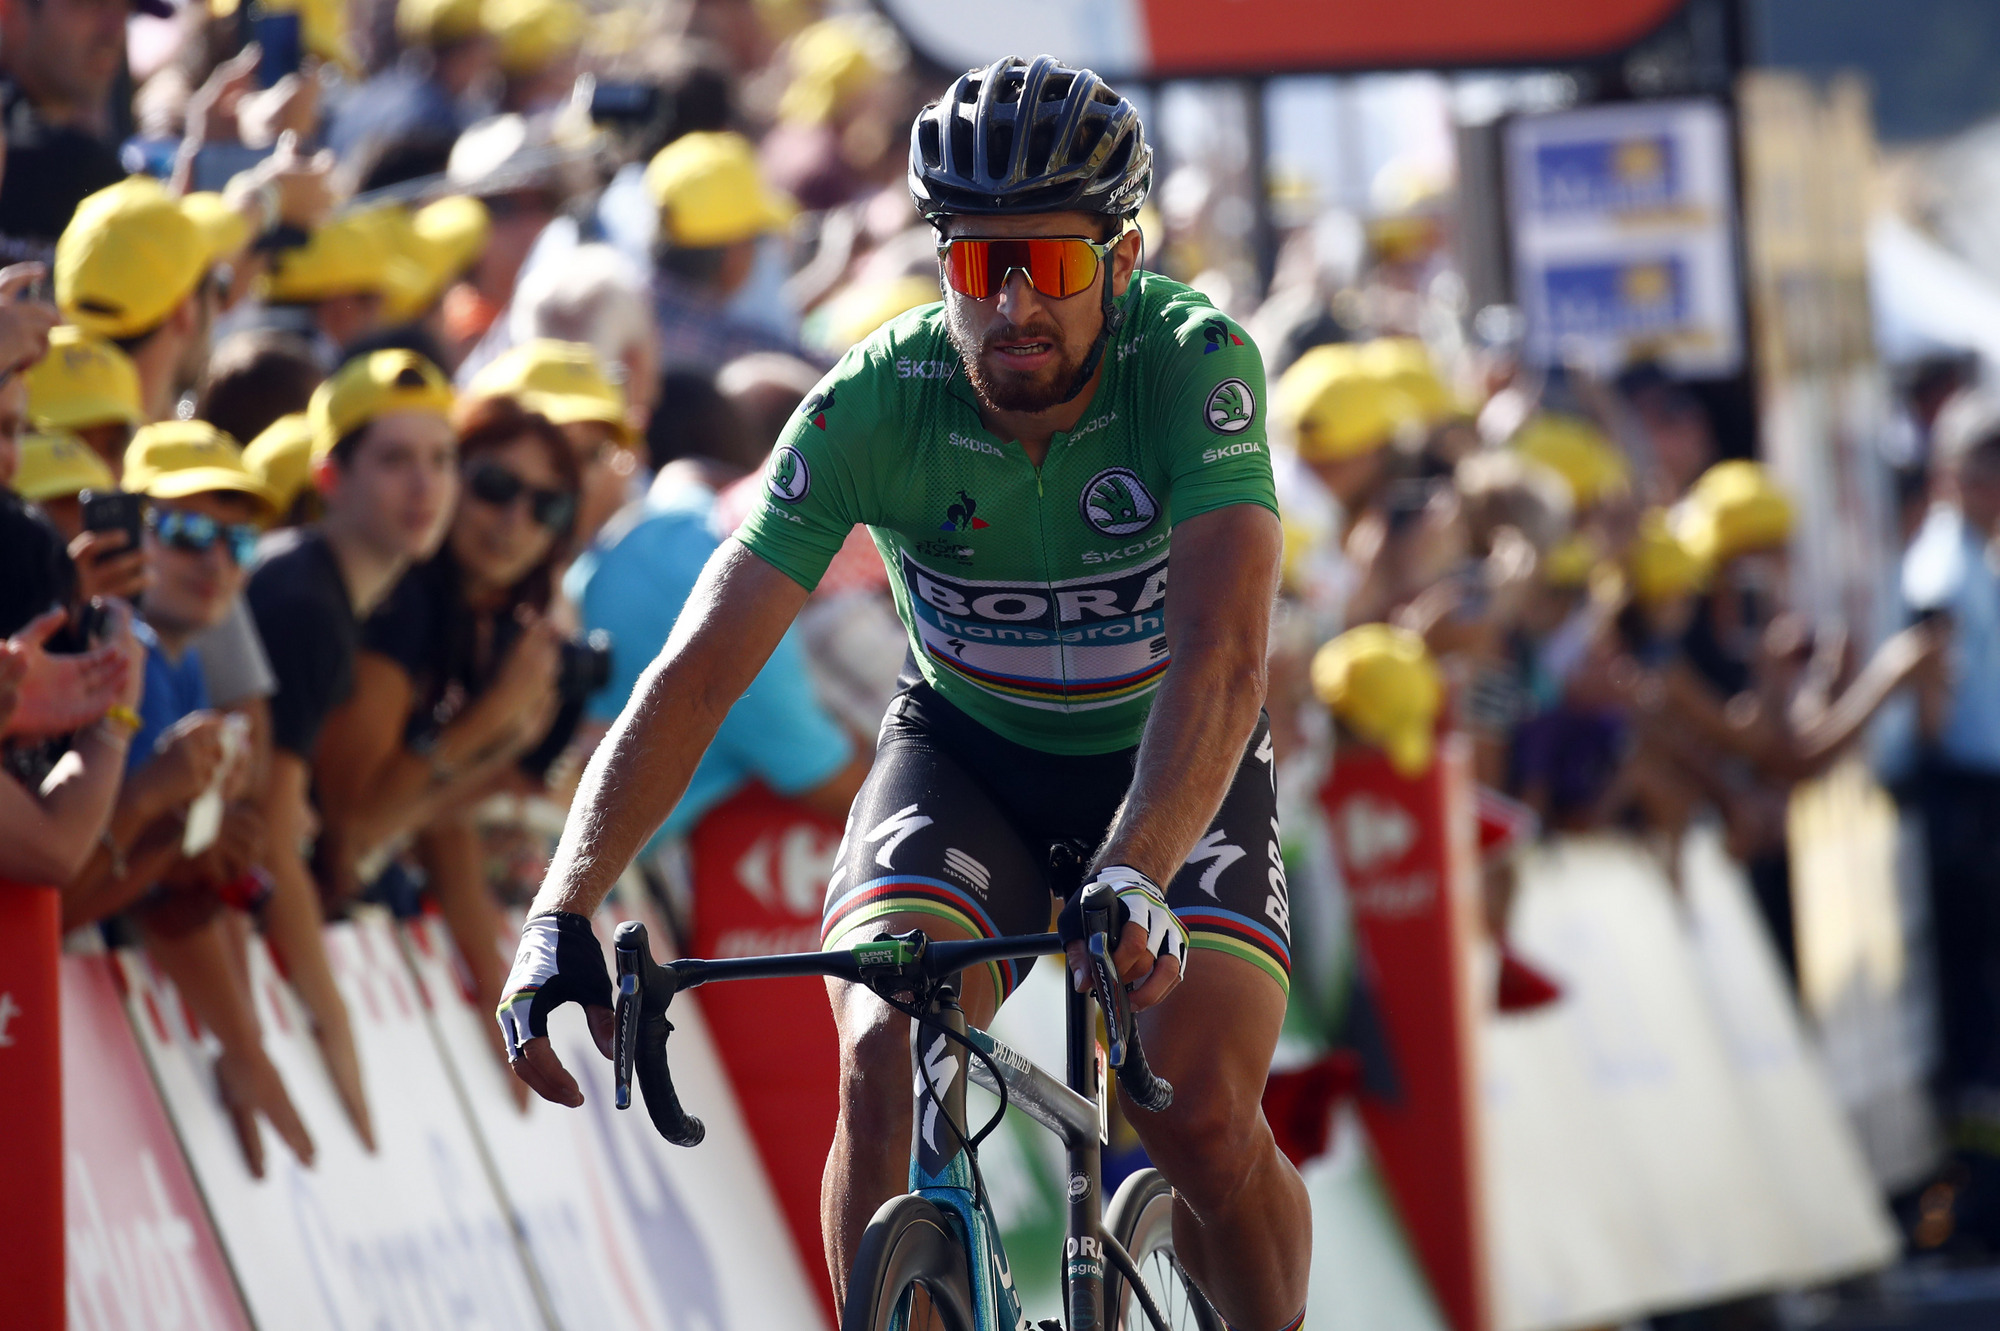 7c2fb9c85e0 Peter Sagan extends lead in points competition after 4th place on Stage 14  of the Tour de France   The Bike Comes First